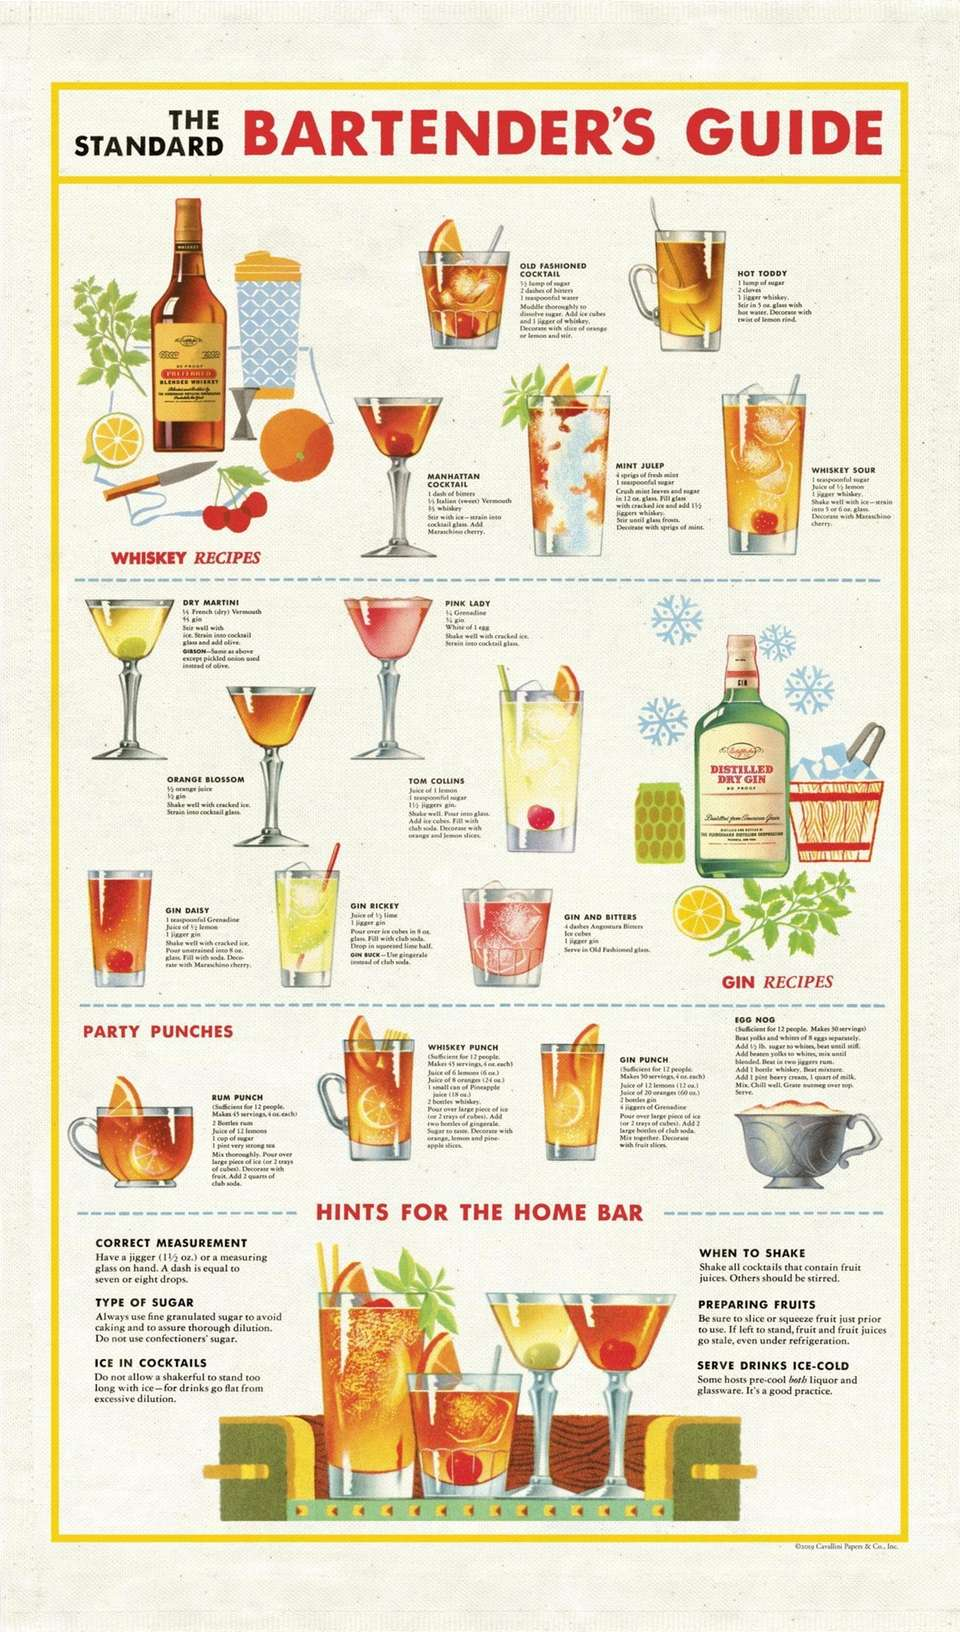 Whip up some classic cocktails at your next